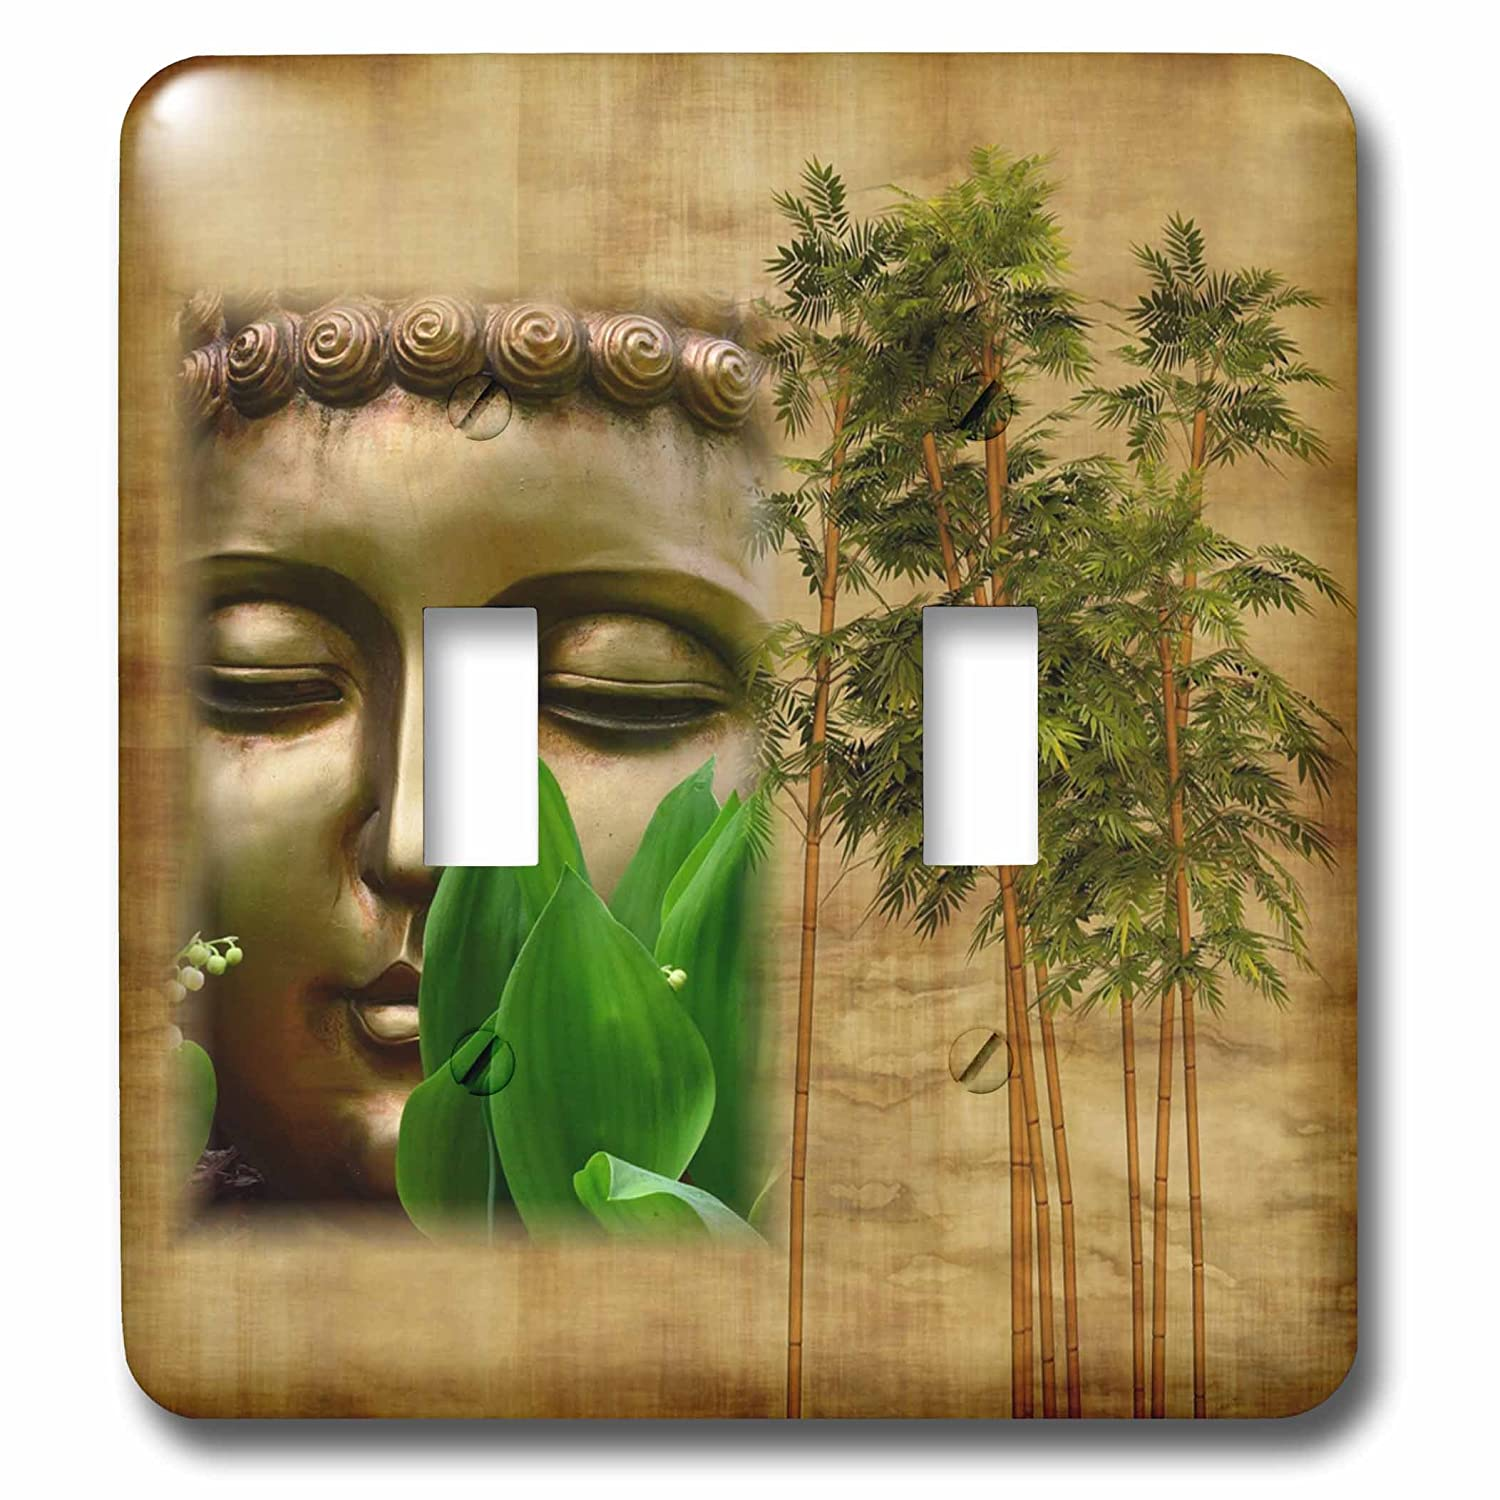 Multicolor 3dRose LSP/_279884/_2 Image of Chinese Buddha Face with Bamboo Toggle Switch